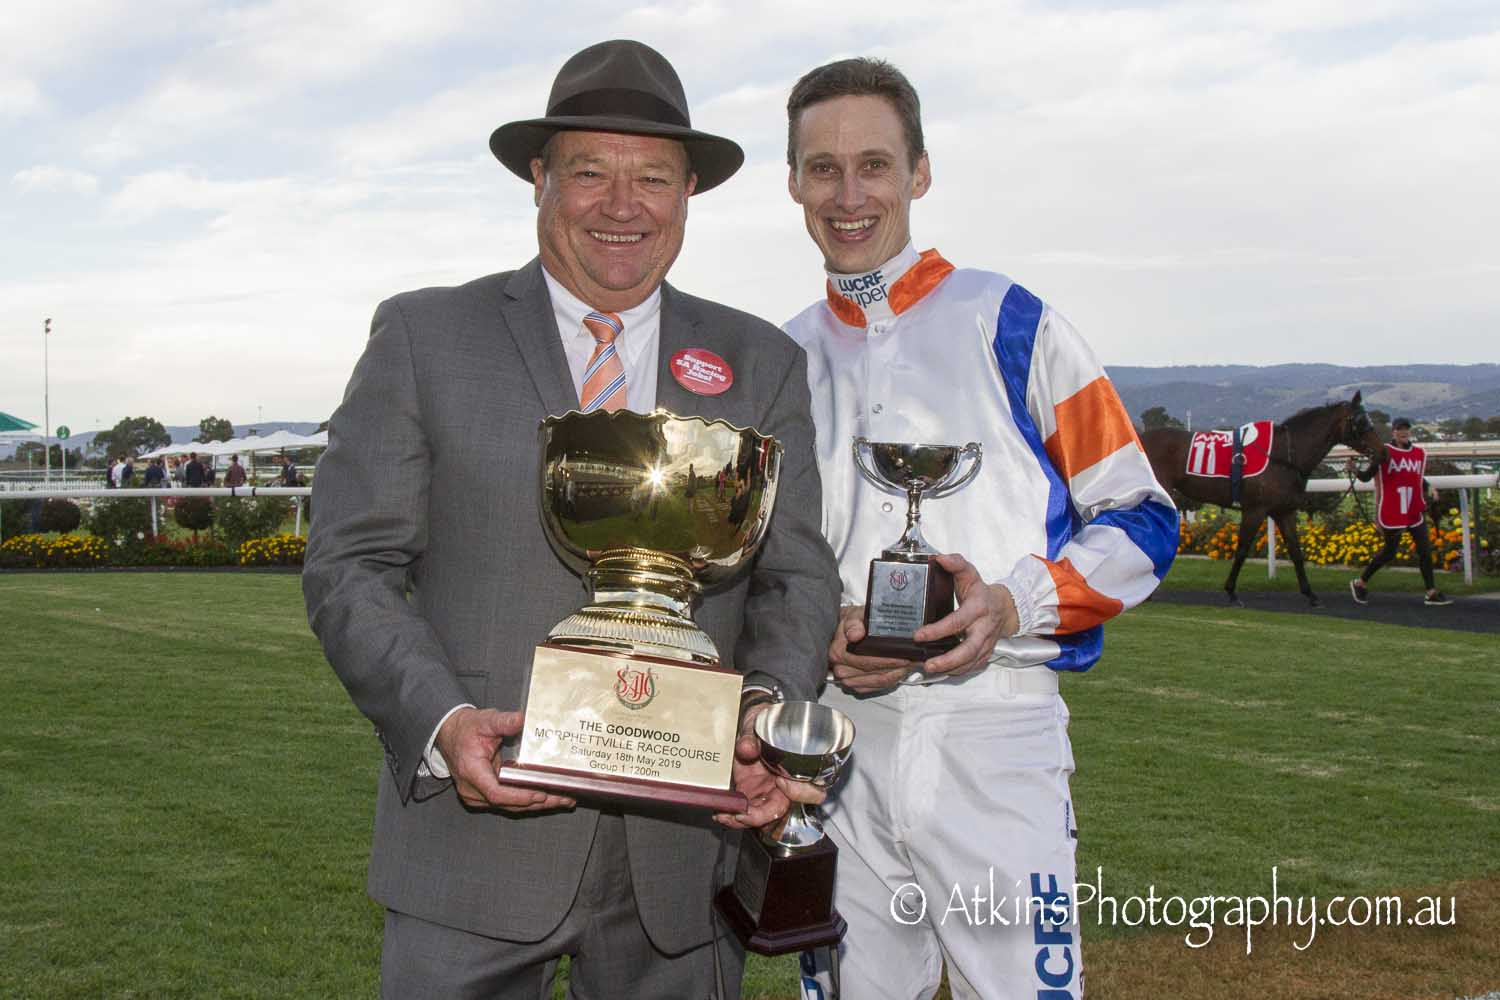 Image courtesy AtkinsPhotography.com.au - It was a maiden Goodwood win for both Tony McEvoy and Todd Pannell. It was also Todd's first Group 1 win.